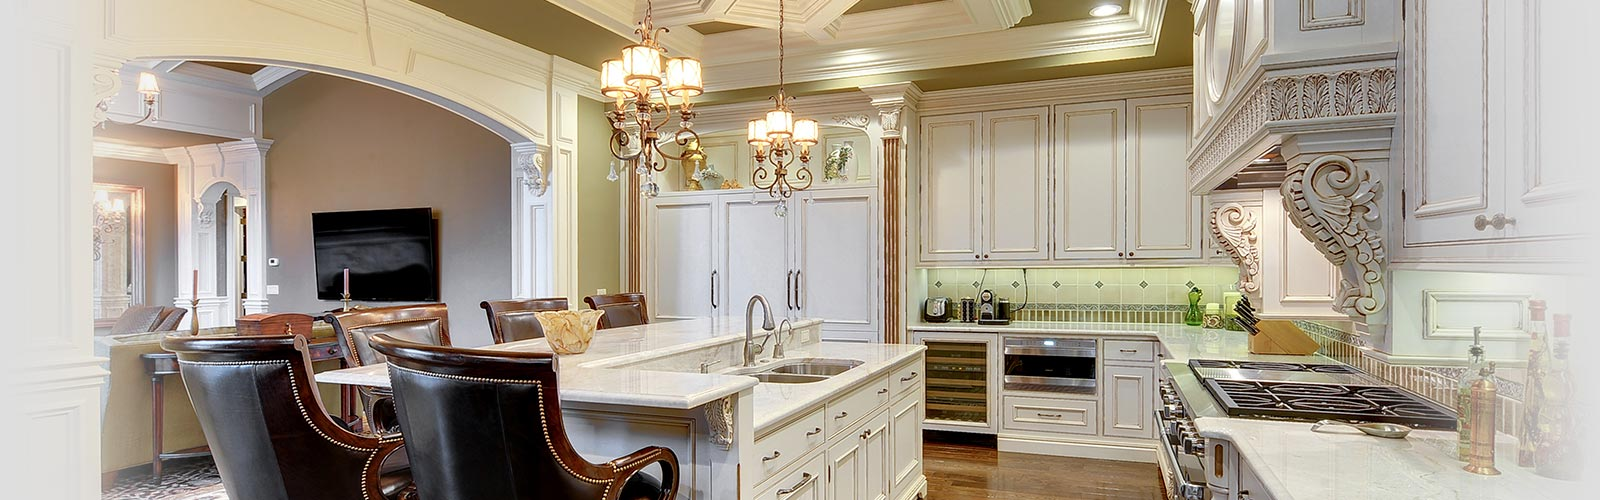 Kitchen3, Custom Home Builder